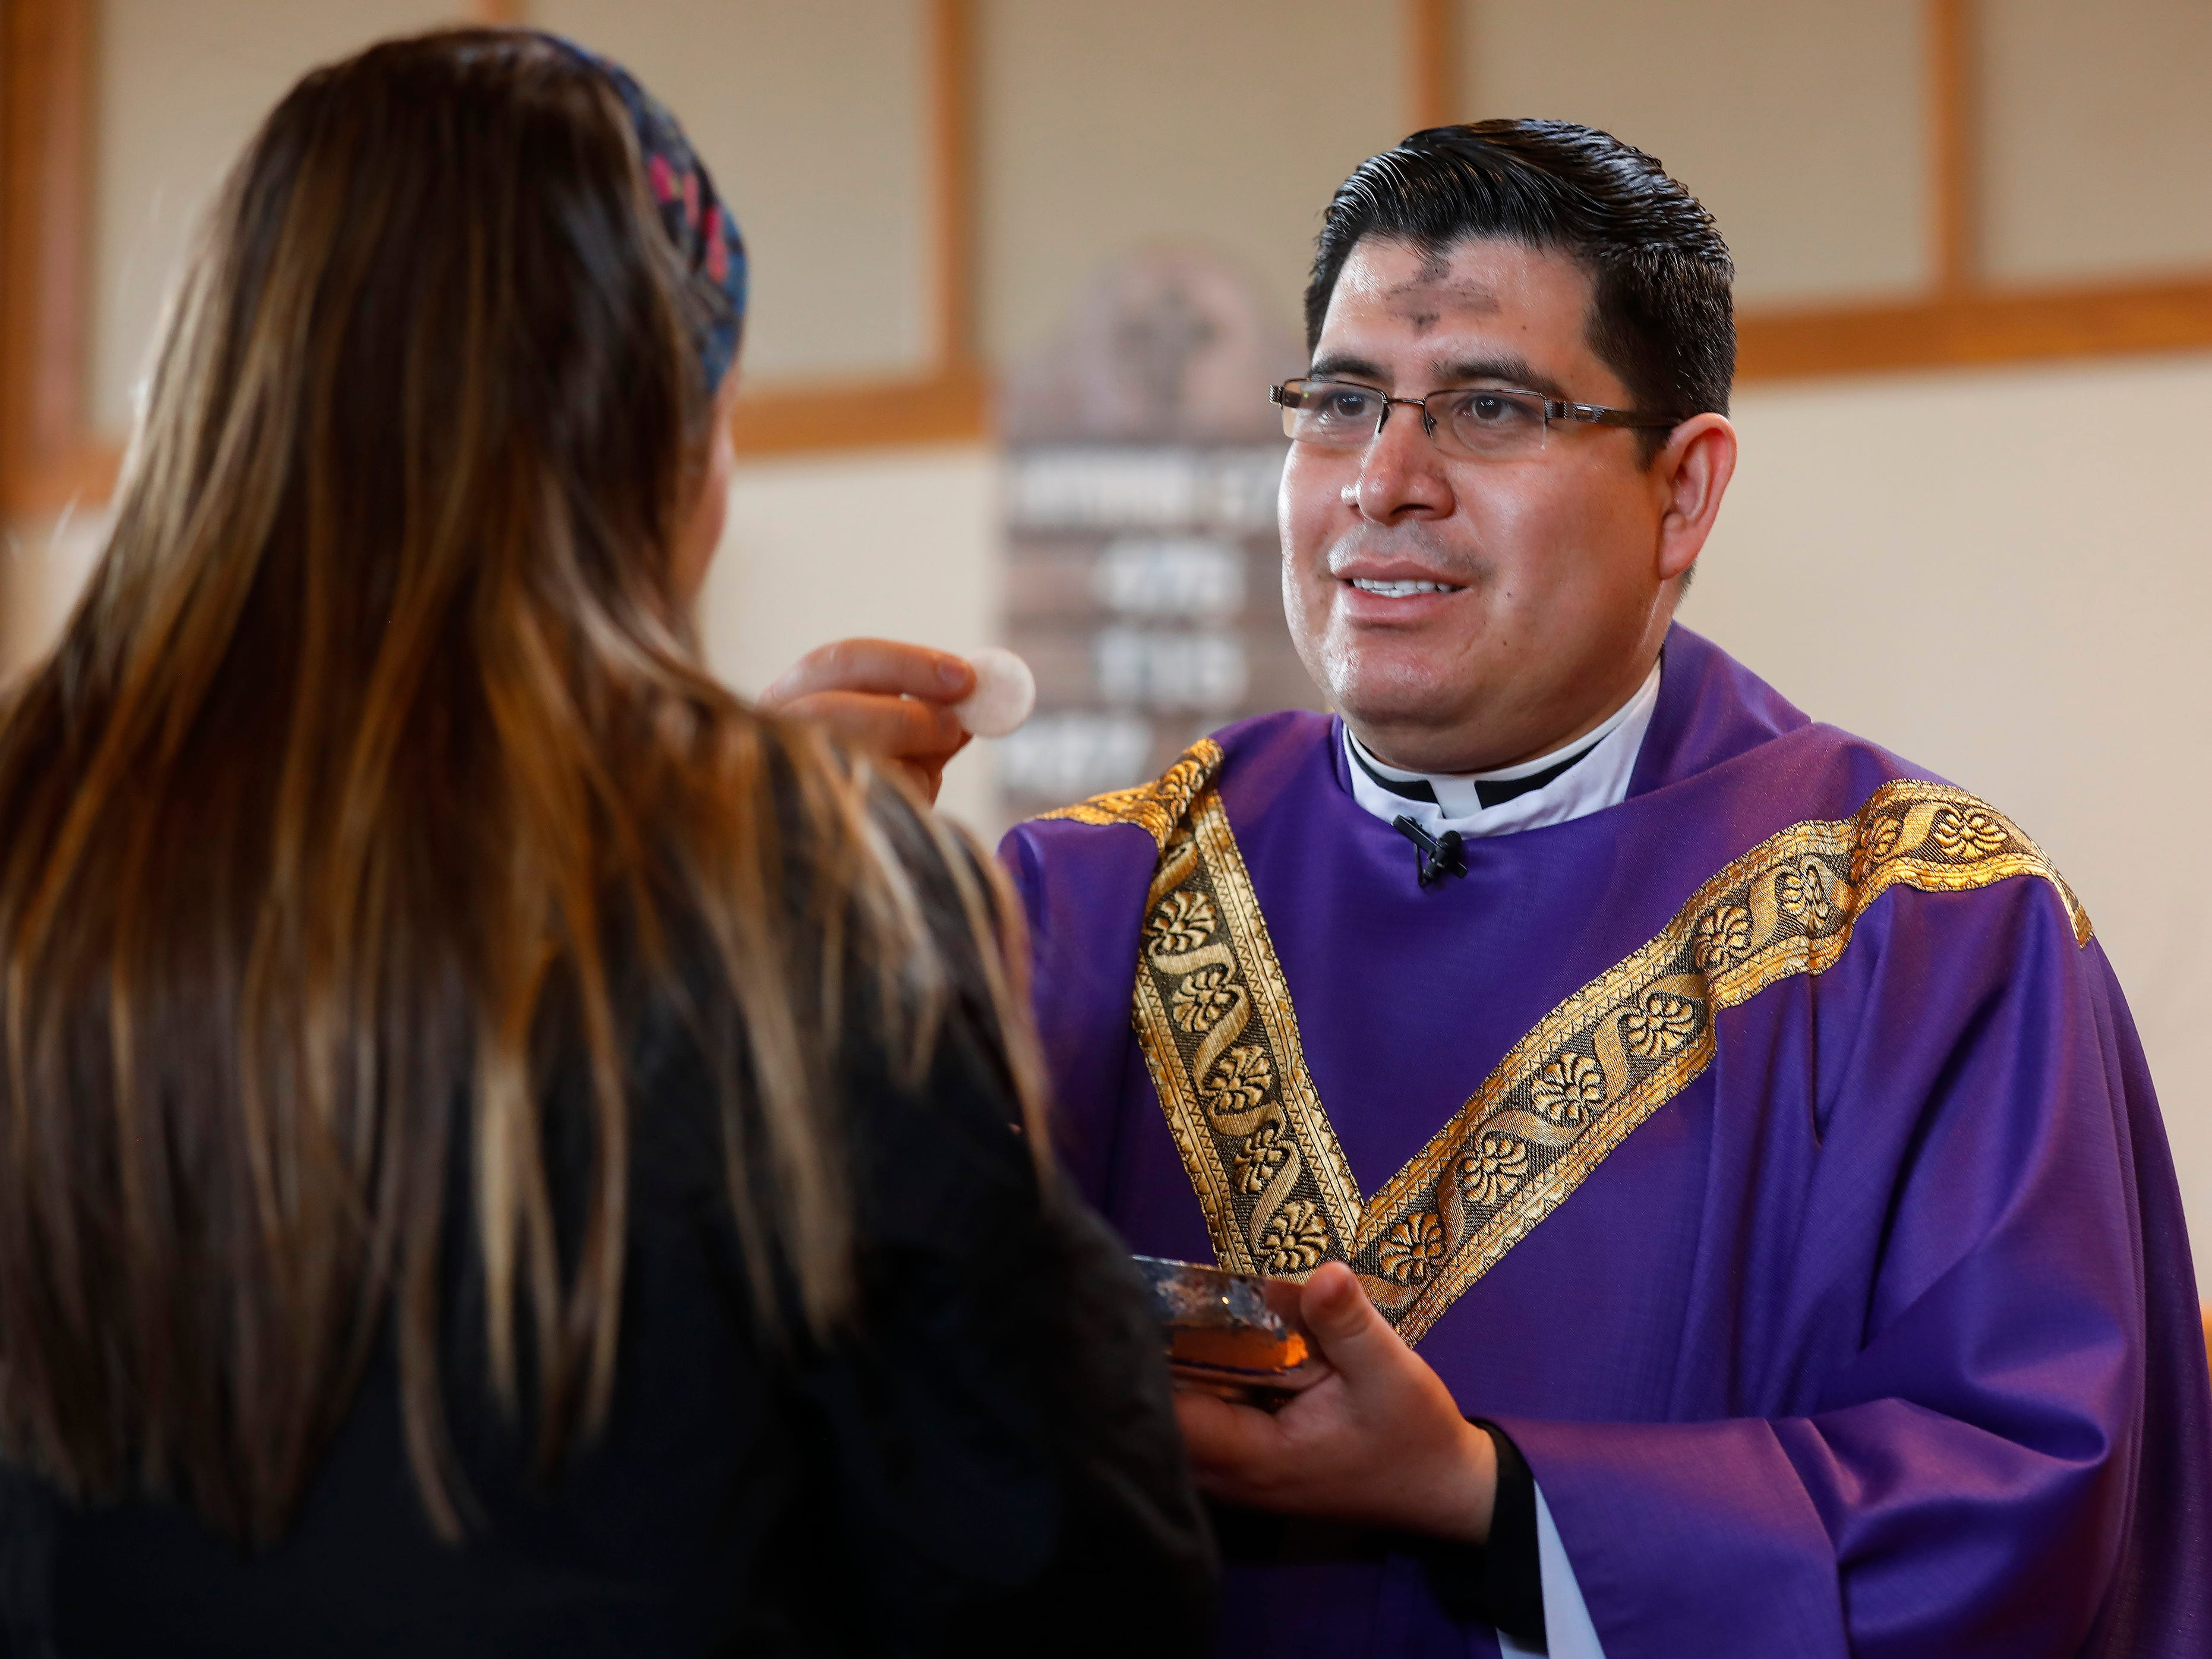 Father Javier Reyes offers the host to a congregant during the Ash Wednesday Mass at the Missouri State University Catholic Campus Ministry on Wednesday, March 6, 2019.